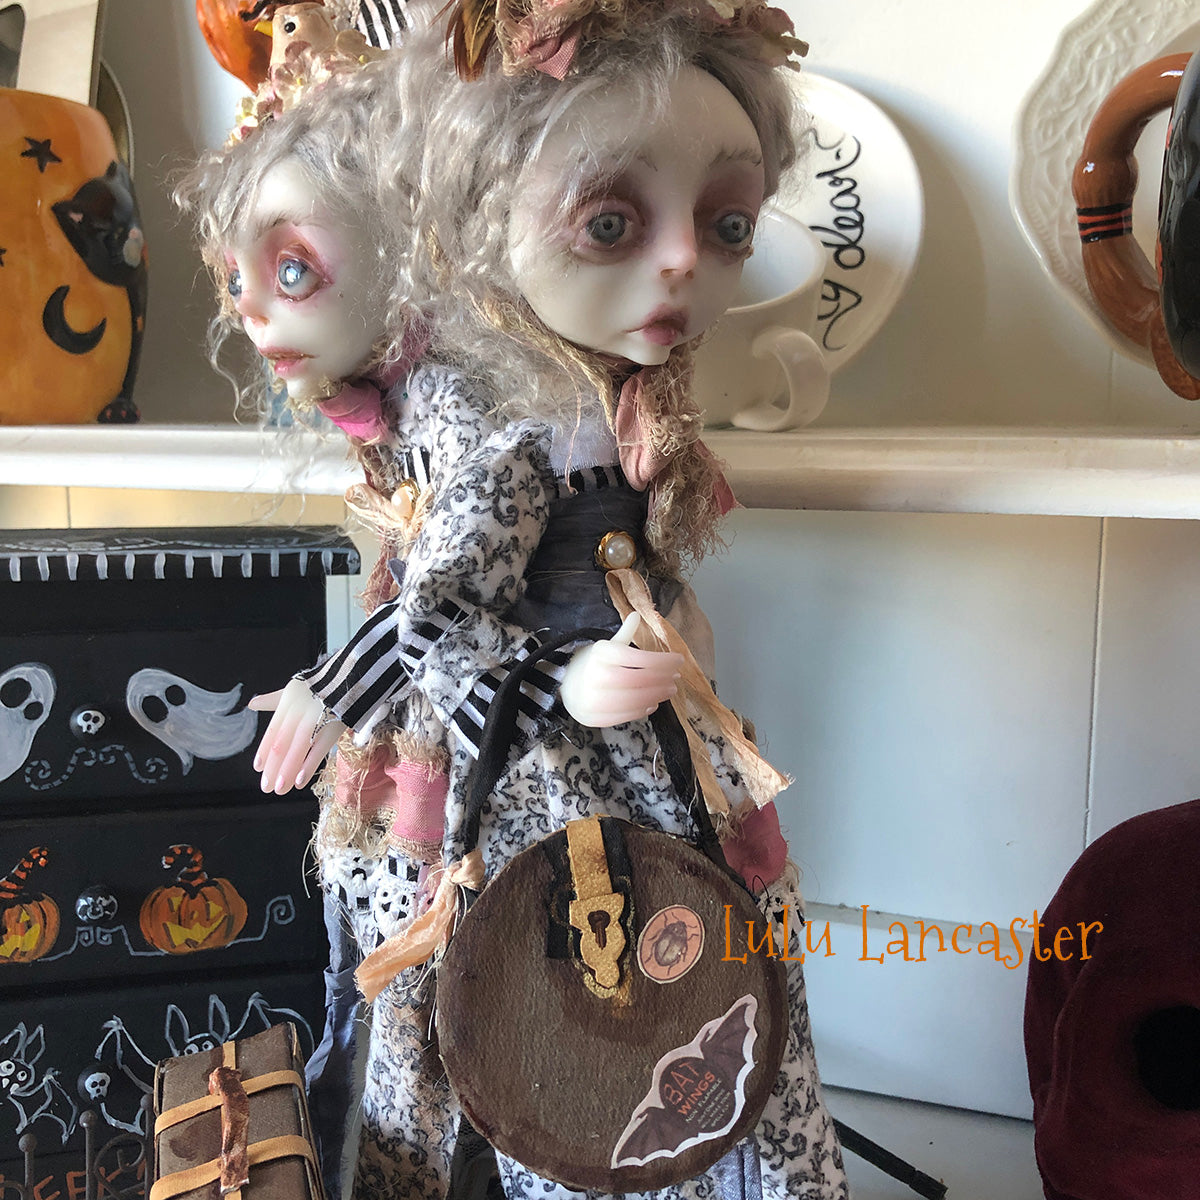 Luna and Rainn Conjoined Gothic Traveling twins OOAK Art Doll LuLusApple